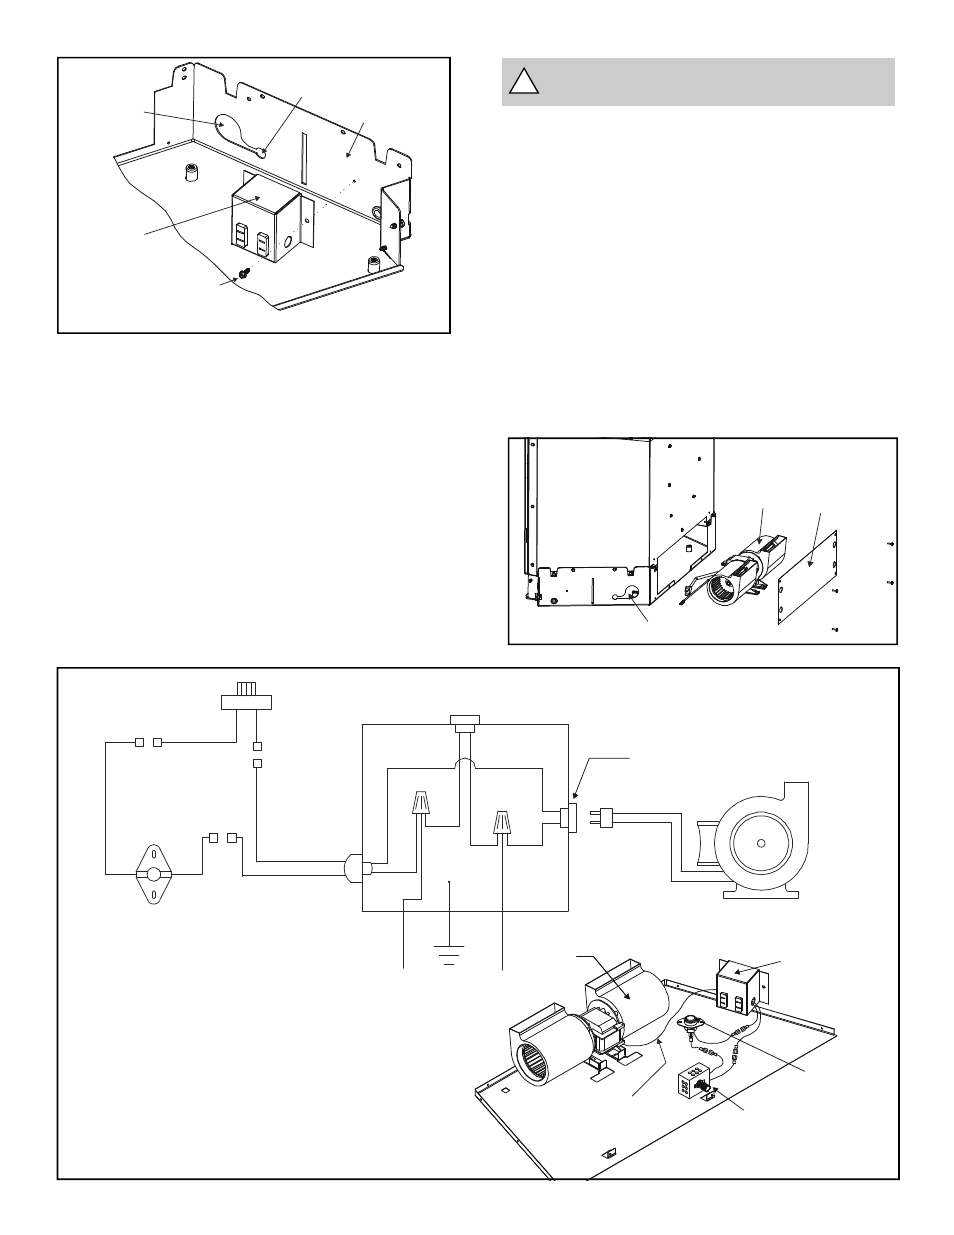 Glo Underfloor Heating Wiring Diagram : Figure fan wiring diagram warning must use the cord